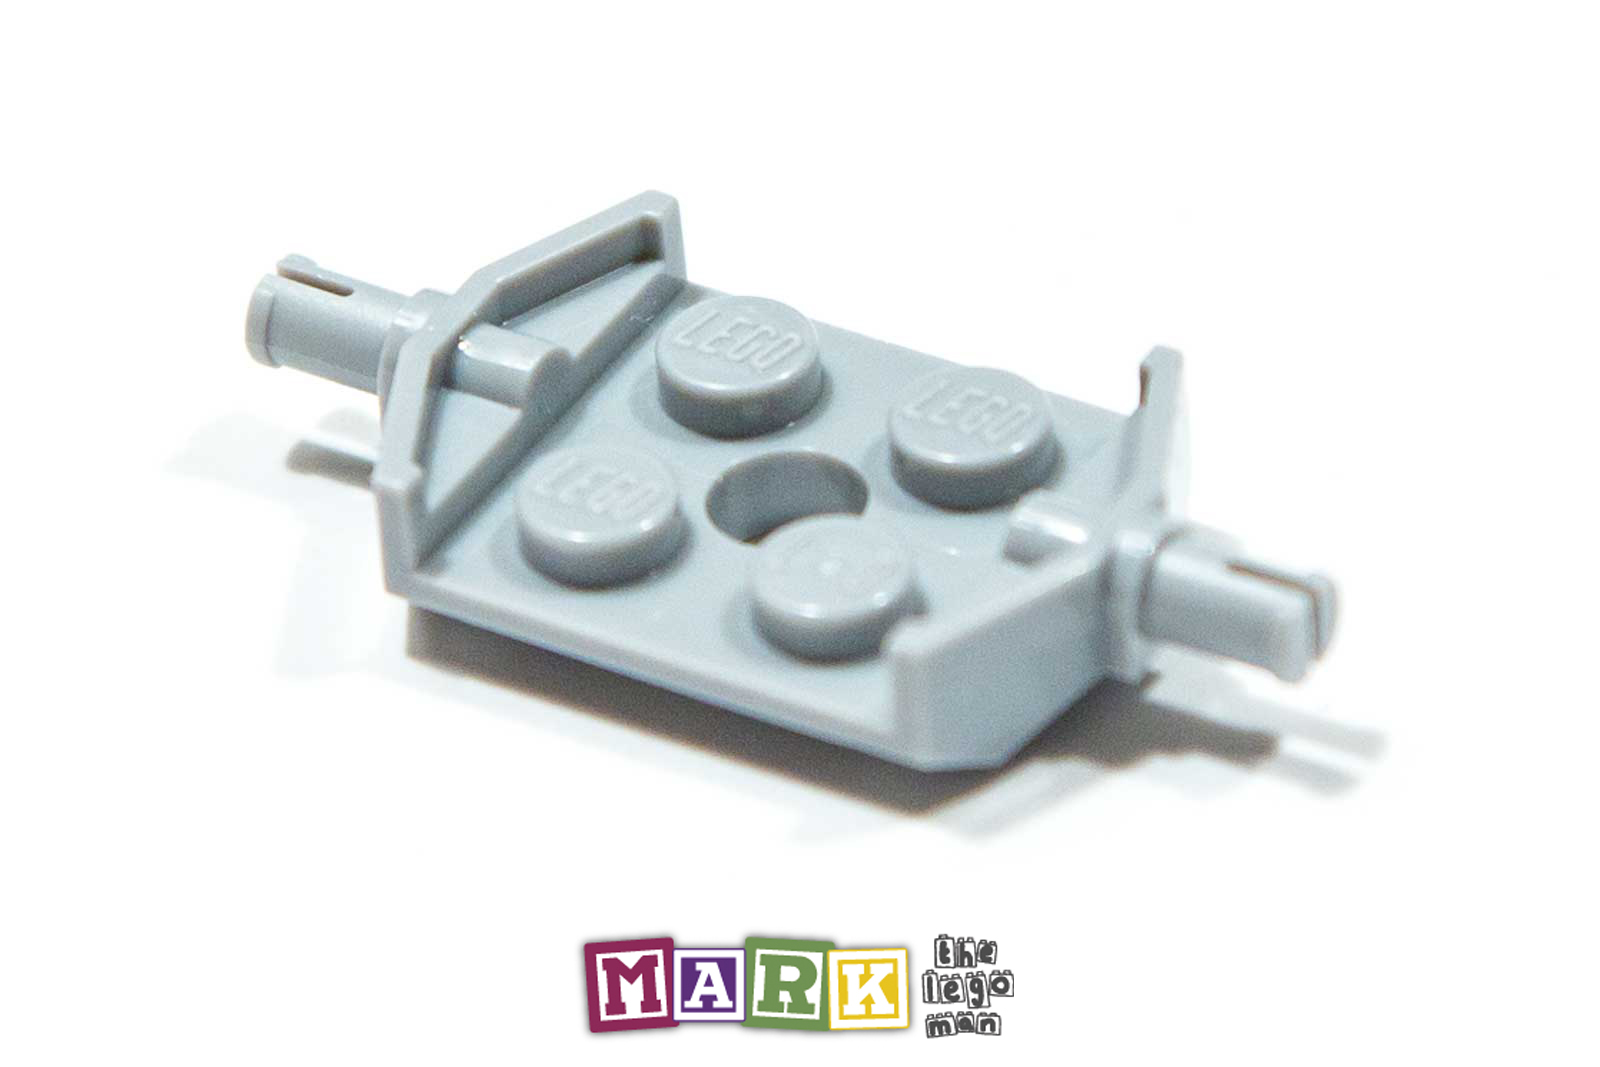 NEW LEGO Part Number 6157 in Med Stone Grey